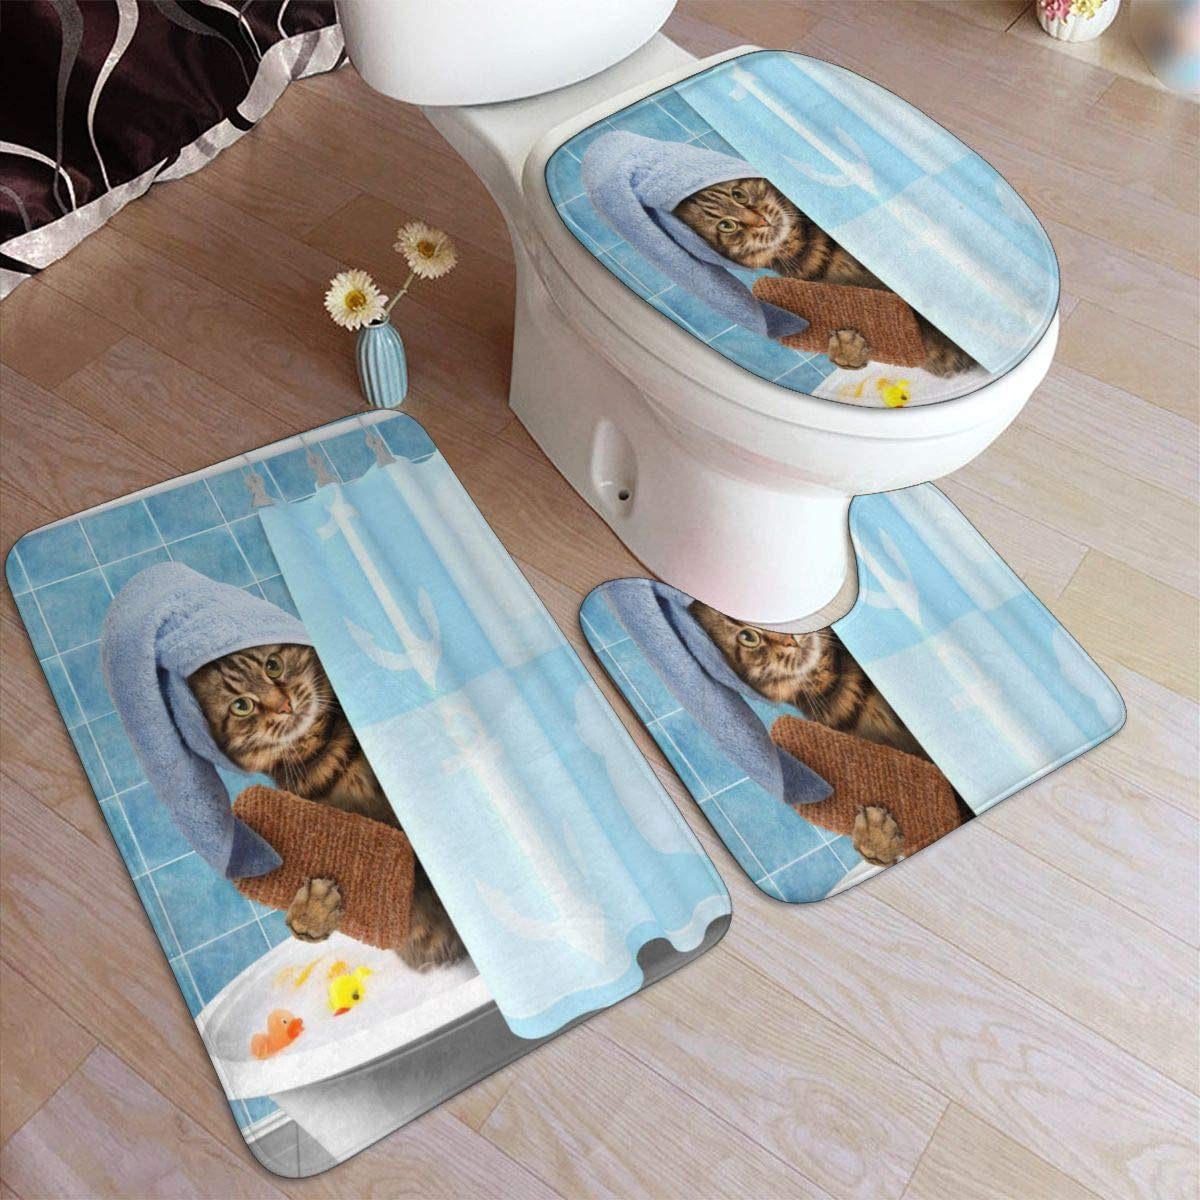 Bath Mat Sets, Cat Bathing,Contour Rug U-Shaped Toilet Lid Cover,Non Slip,Machine Washable,3-Piece Rug Set Easier to Dry for Bathroom